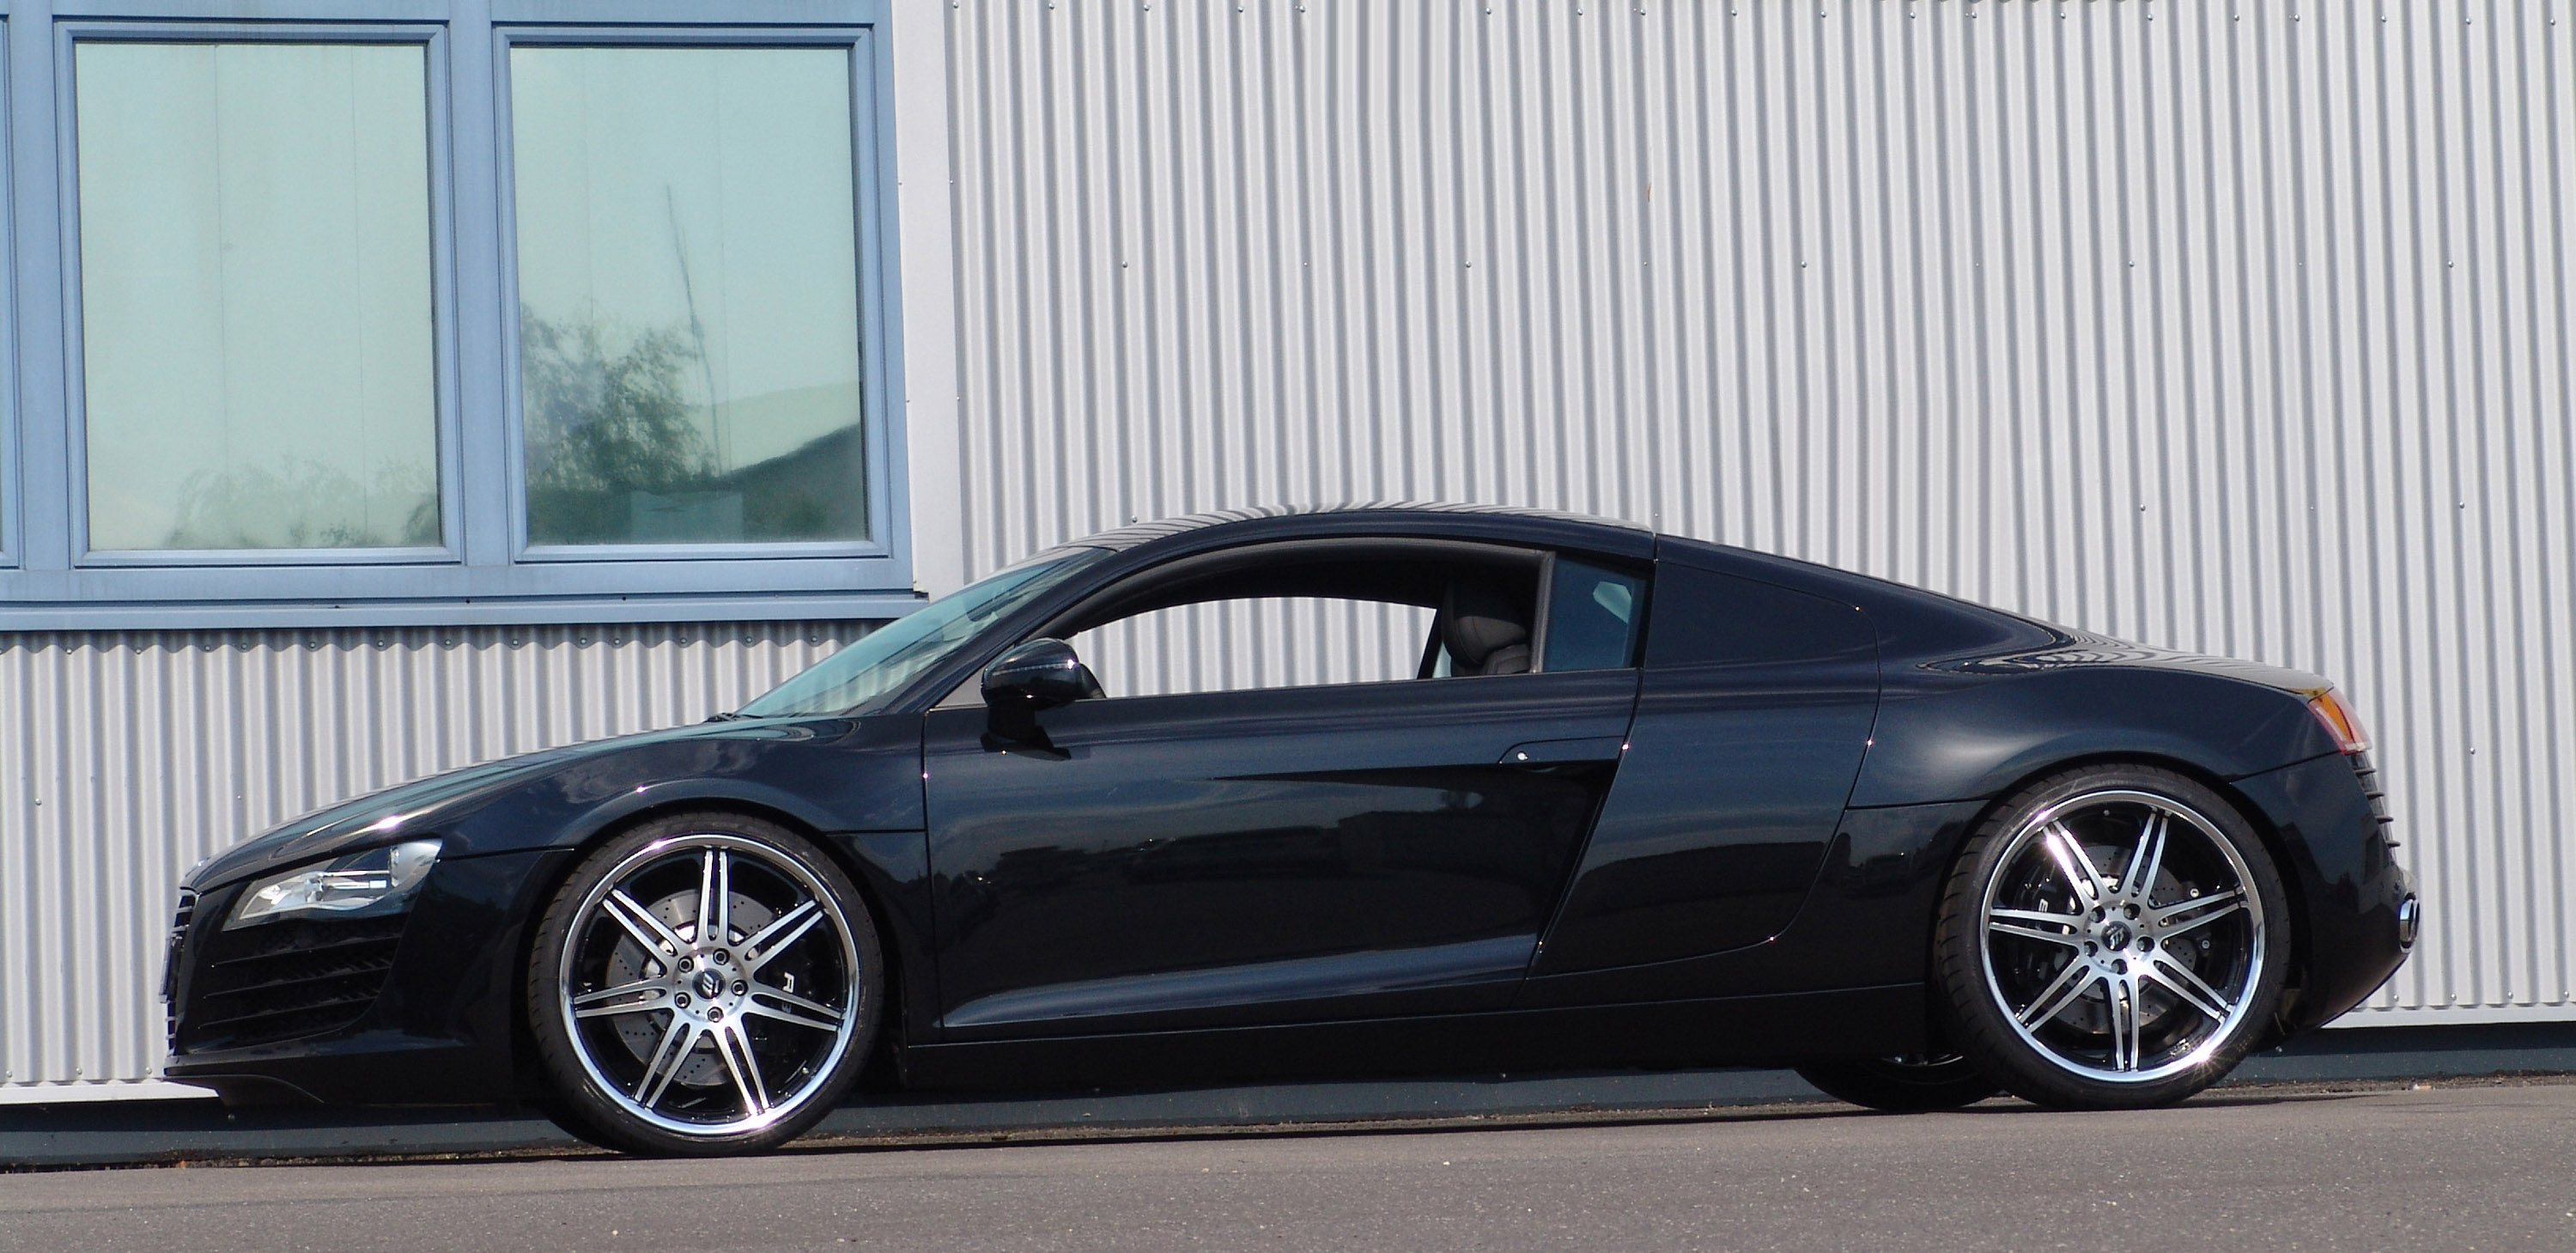 Topic For 2011 Mtm Audi Rs5 Audi Rs5 Foto S Autojunk Nl 58503 2011 Mtm Thema F R Mtm Agora V6 Turbo Q8 Fica 2011 2013 By Abt Sportsline Picture 496876 Car Coupe Cityconnectapps